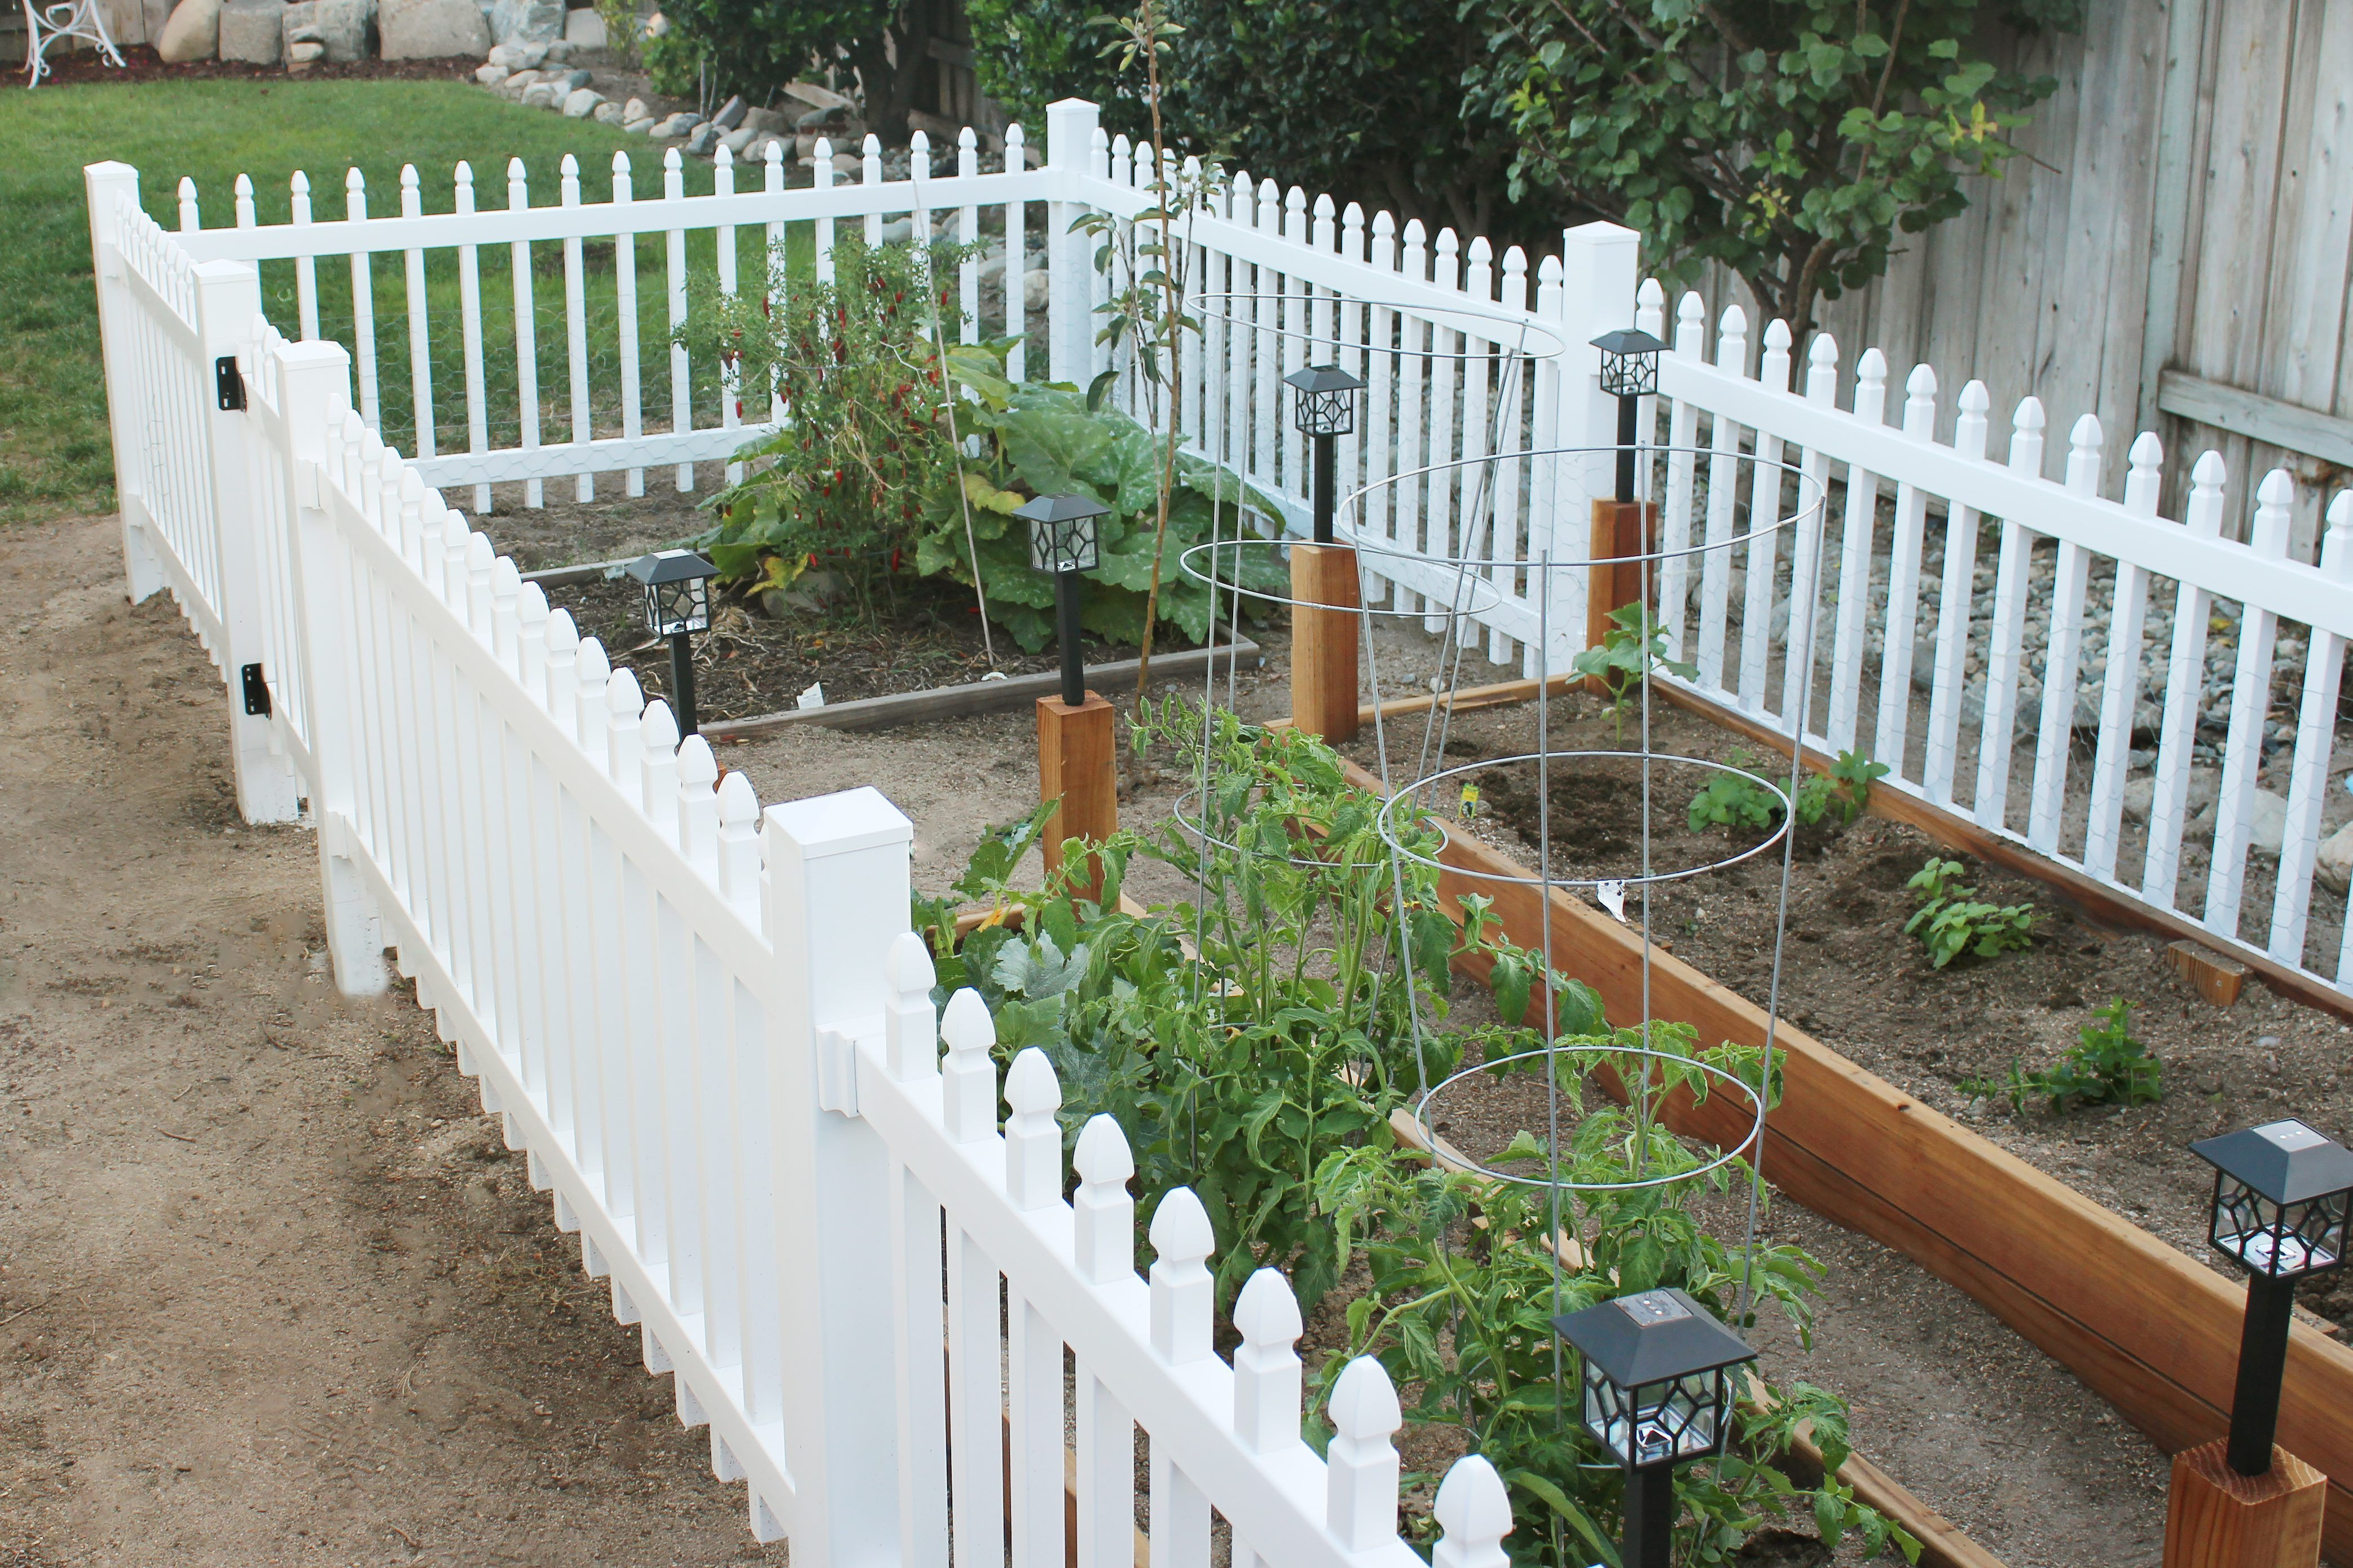 Build a garden fence to keep smaller animals out of the